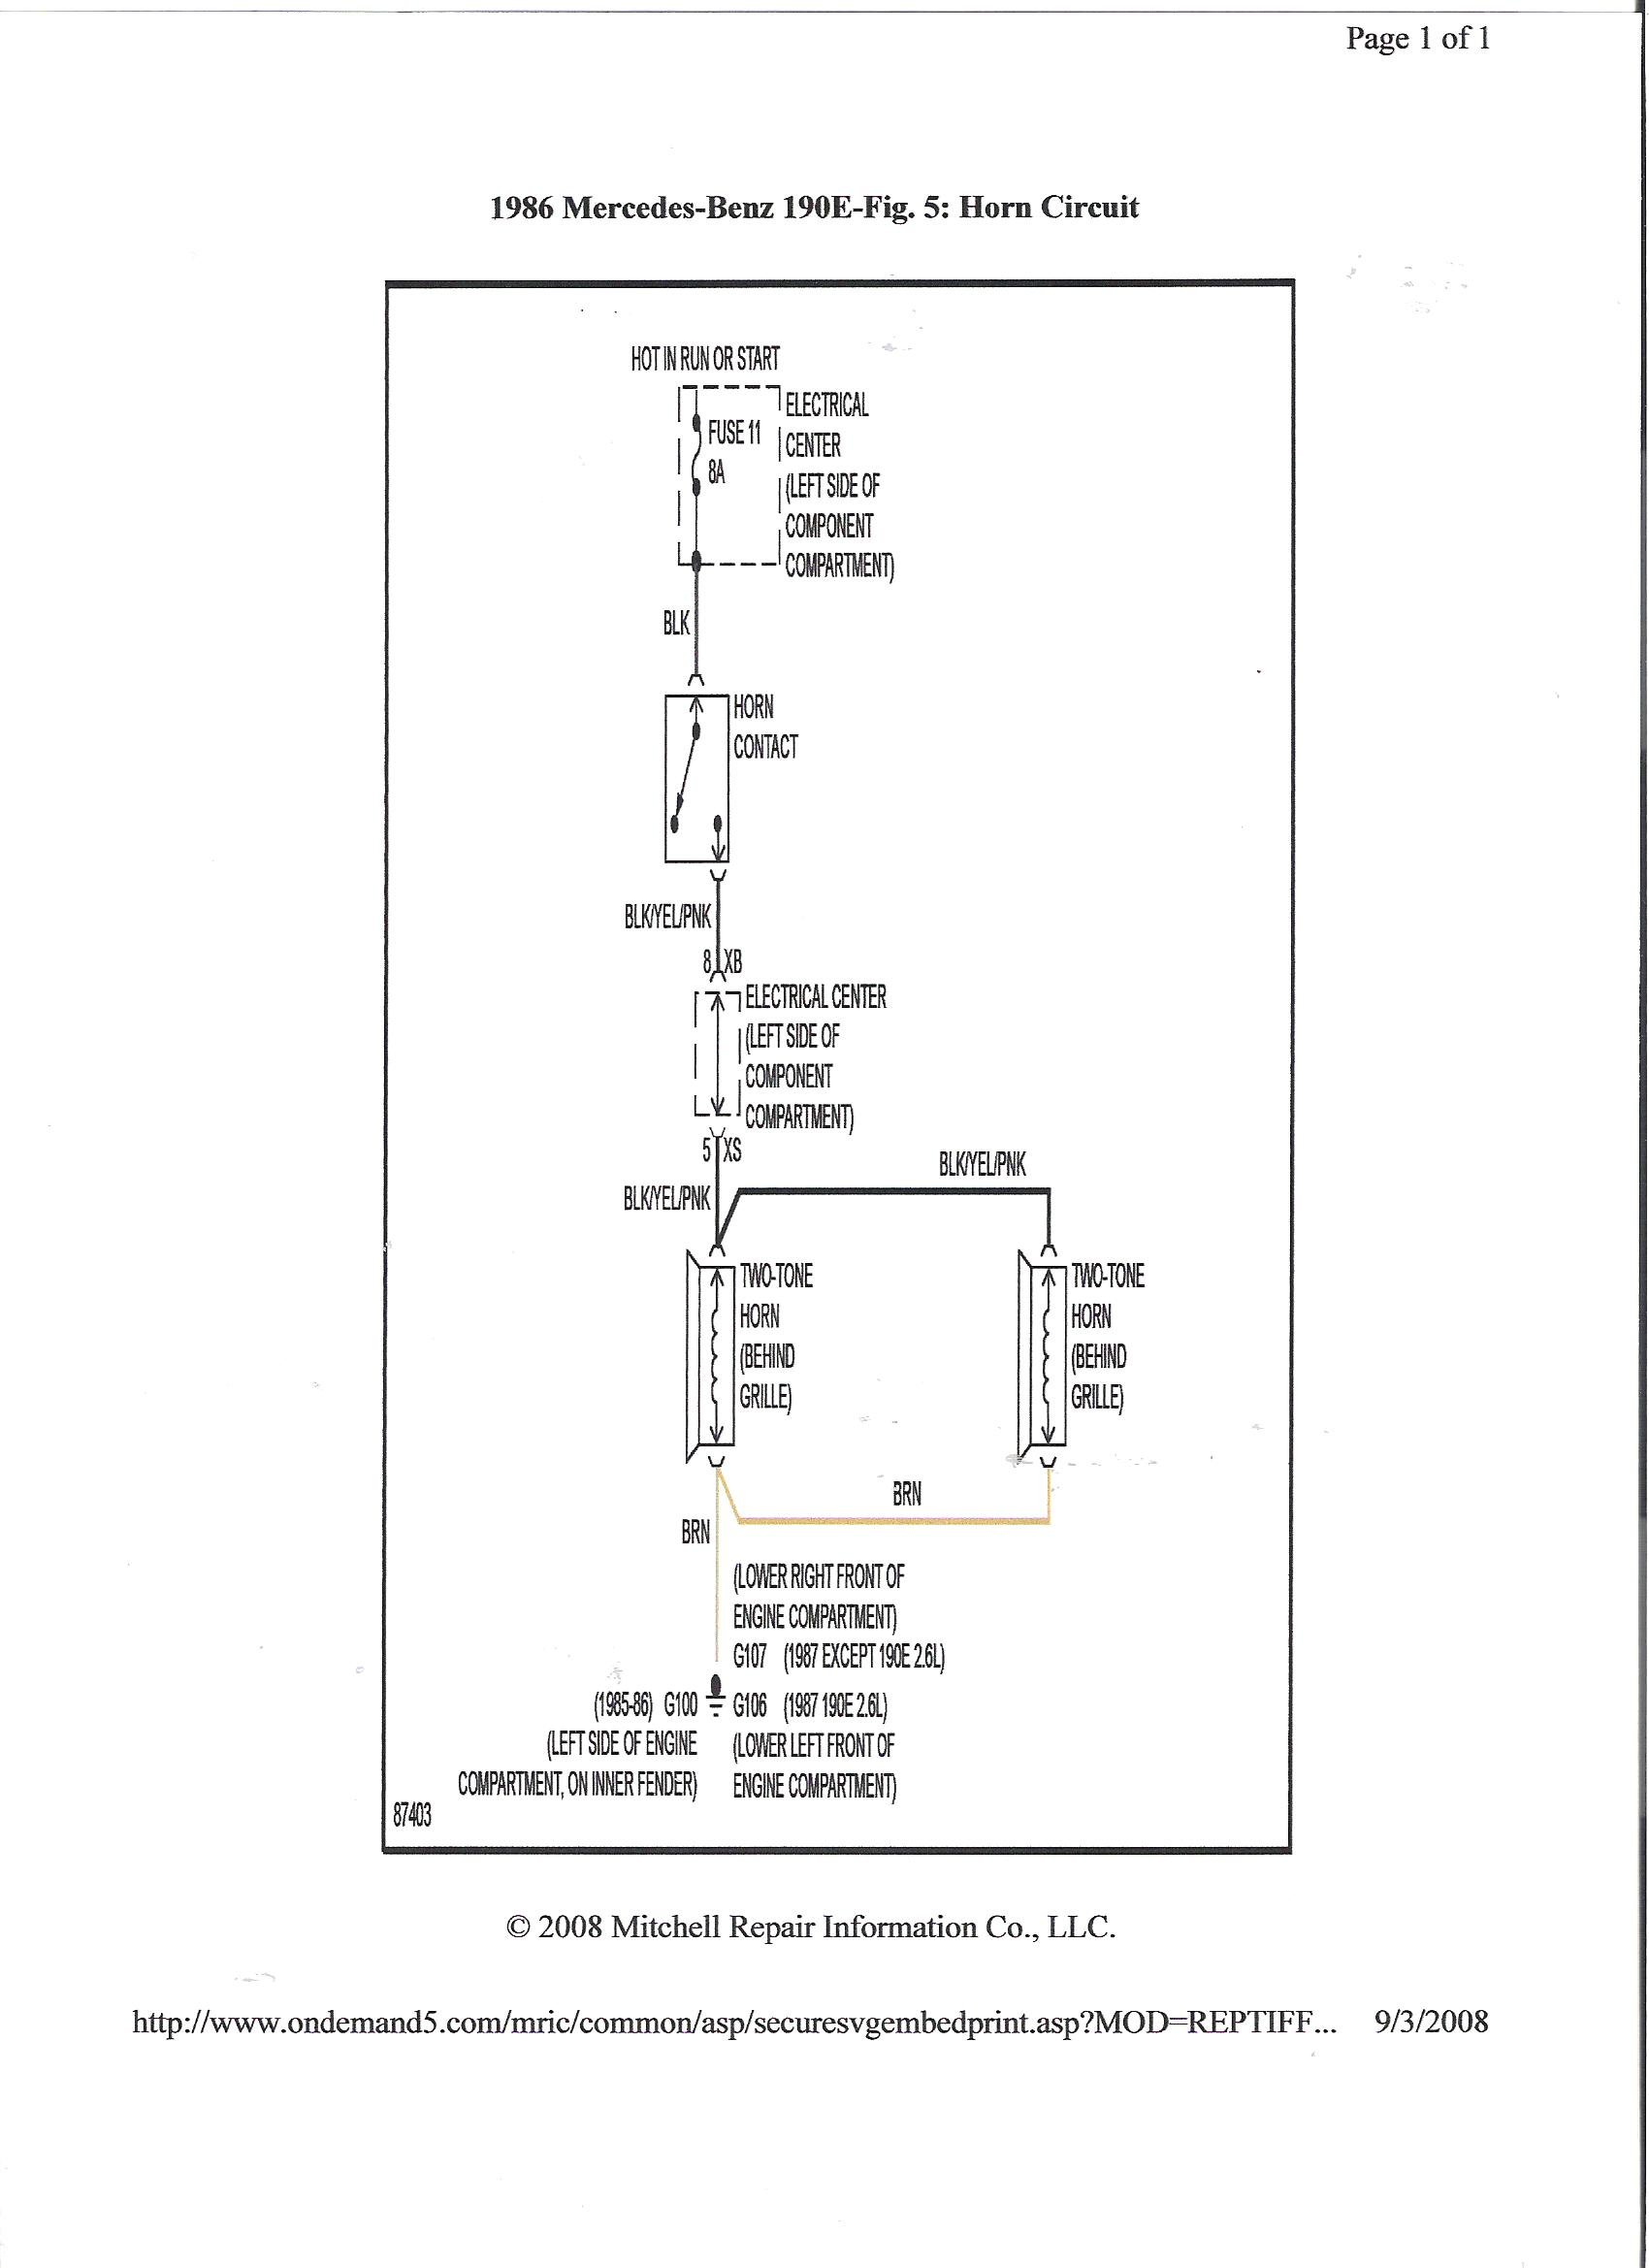 Where Is The Horn Relay Located On A 1986 190e Wiring Diagram For Mercedes Benz Thanks Joe Graphic